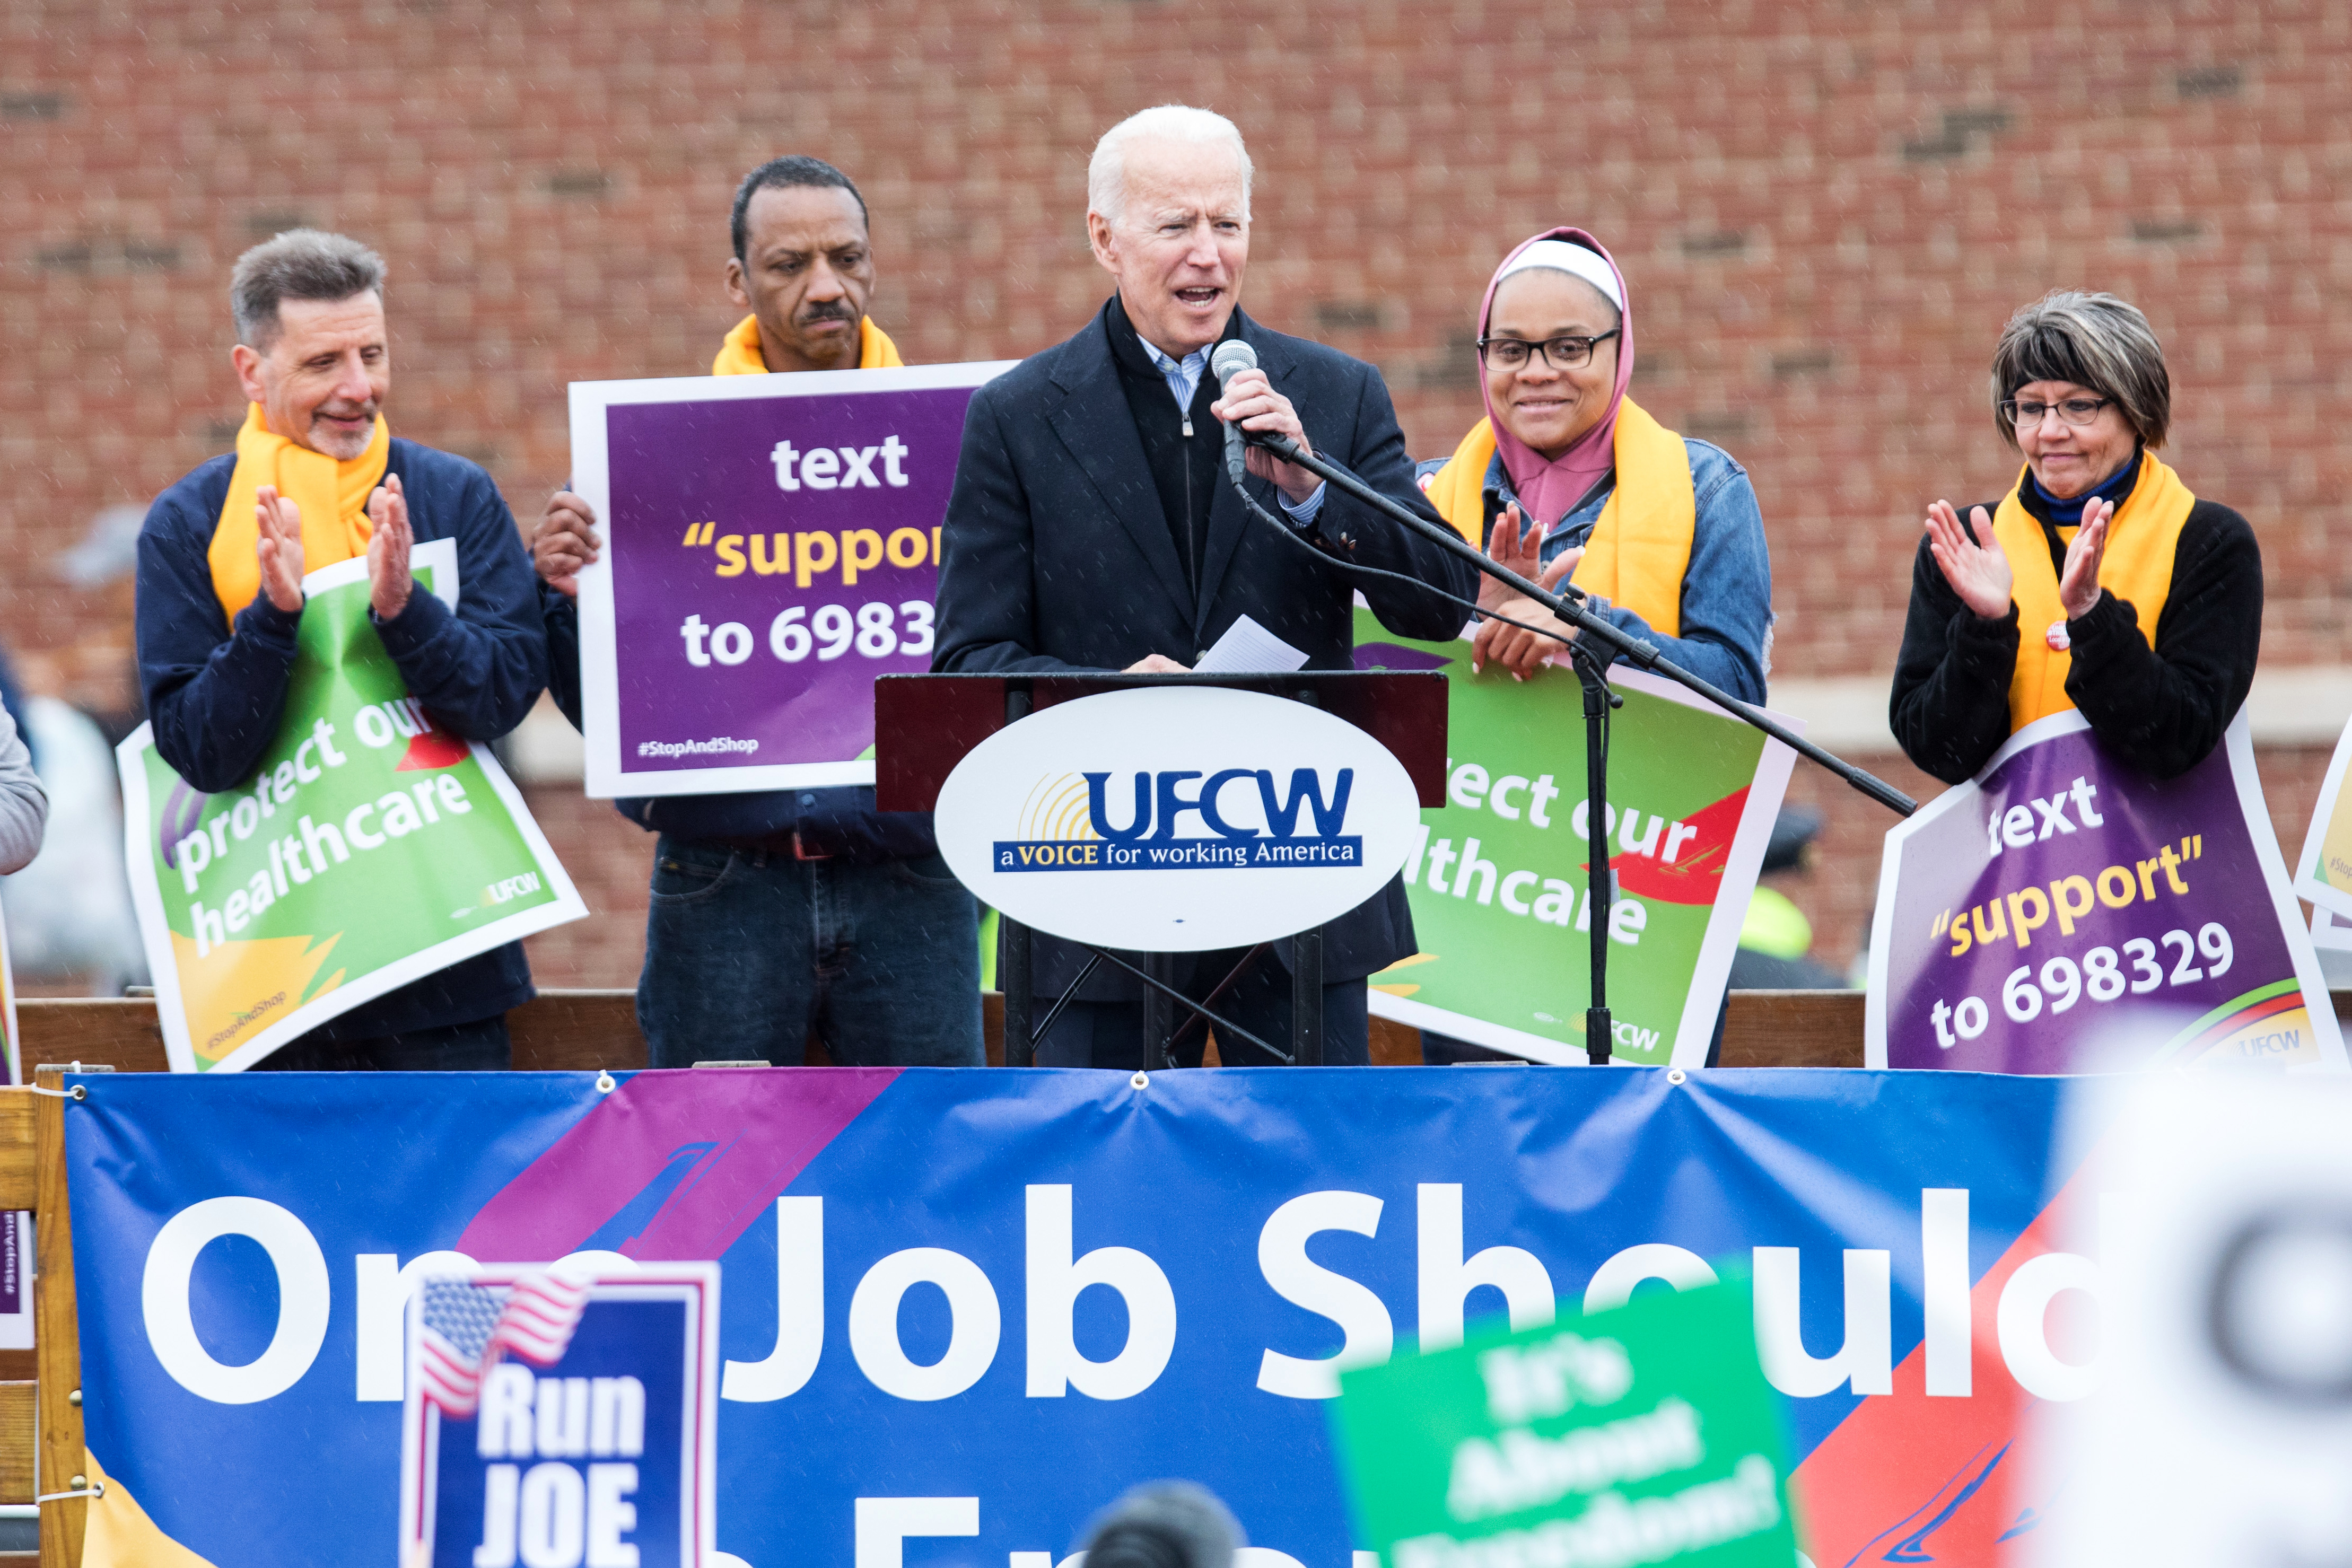 Former Vice President Joe Biden speaks in front of a Stop & Shop in support of union workers on April 18, 2019 in Dorchester, Massachusetts. (Photo by Scott Eisen/Getty Images)